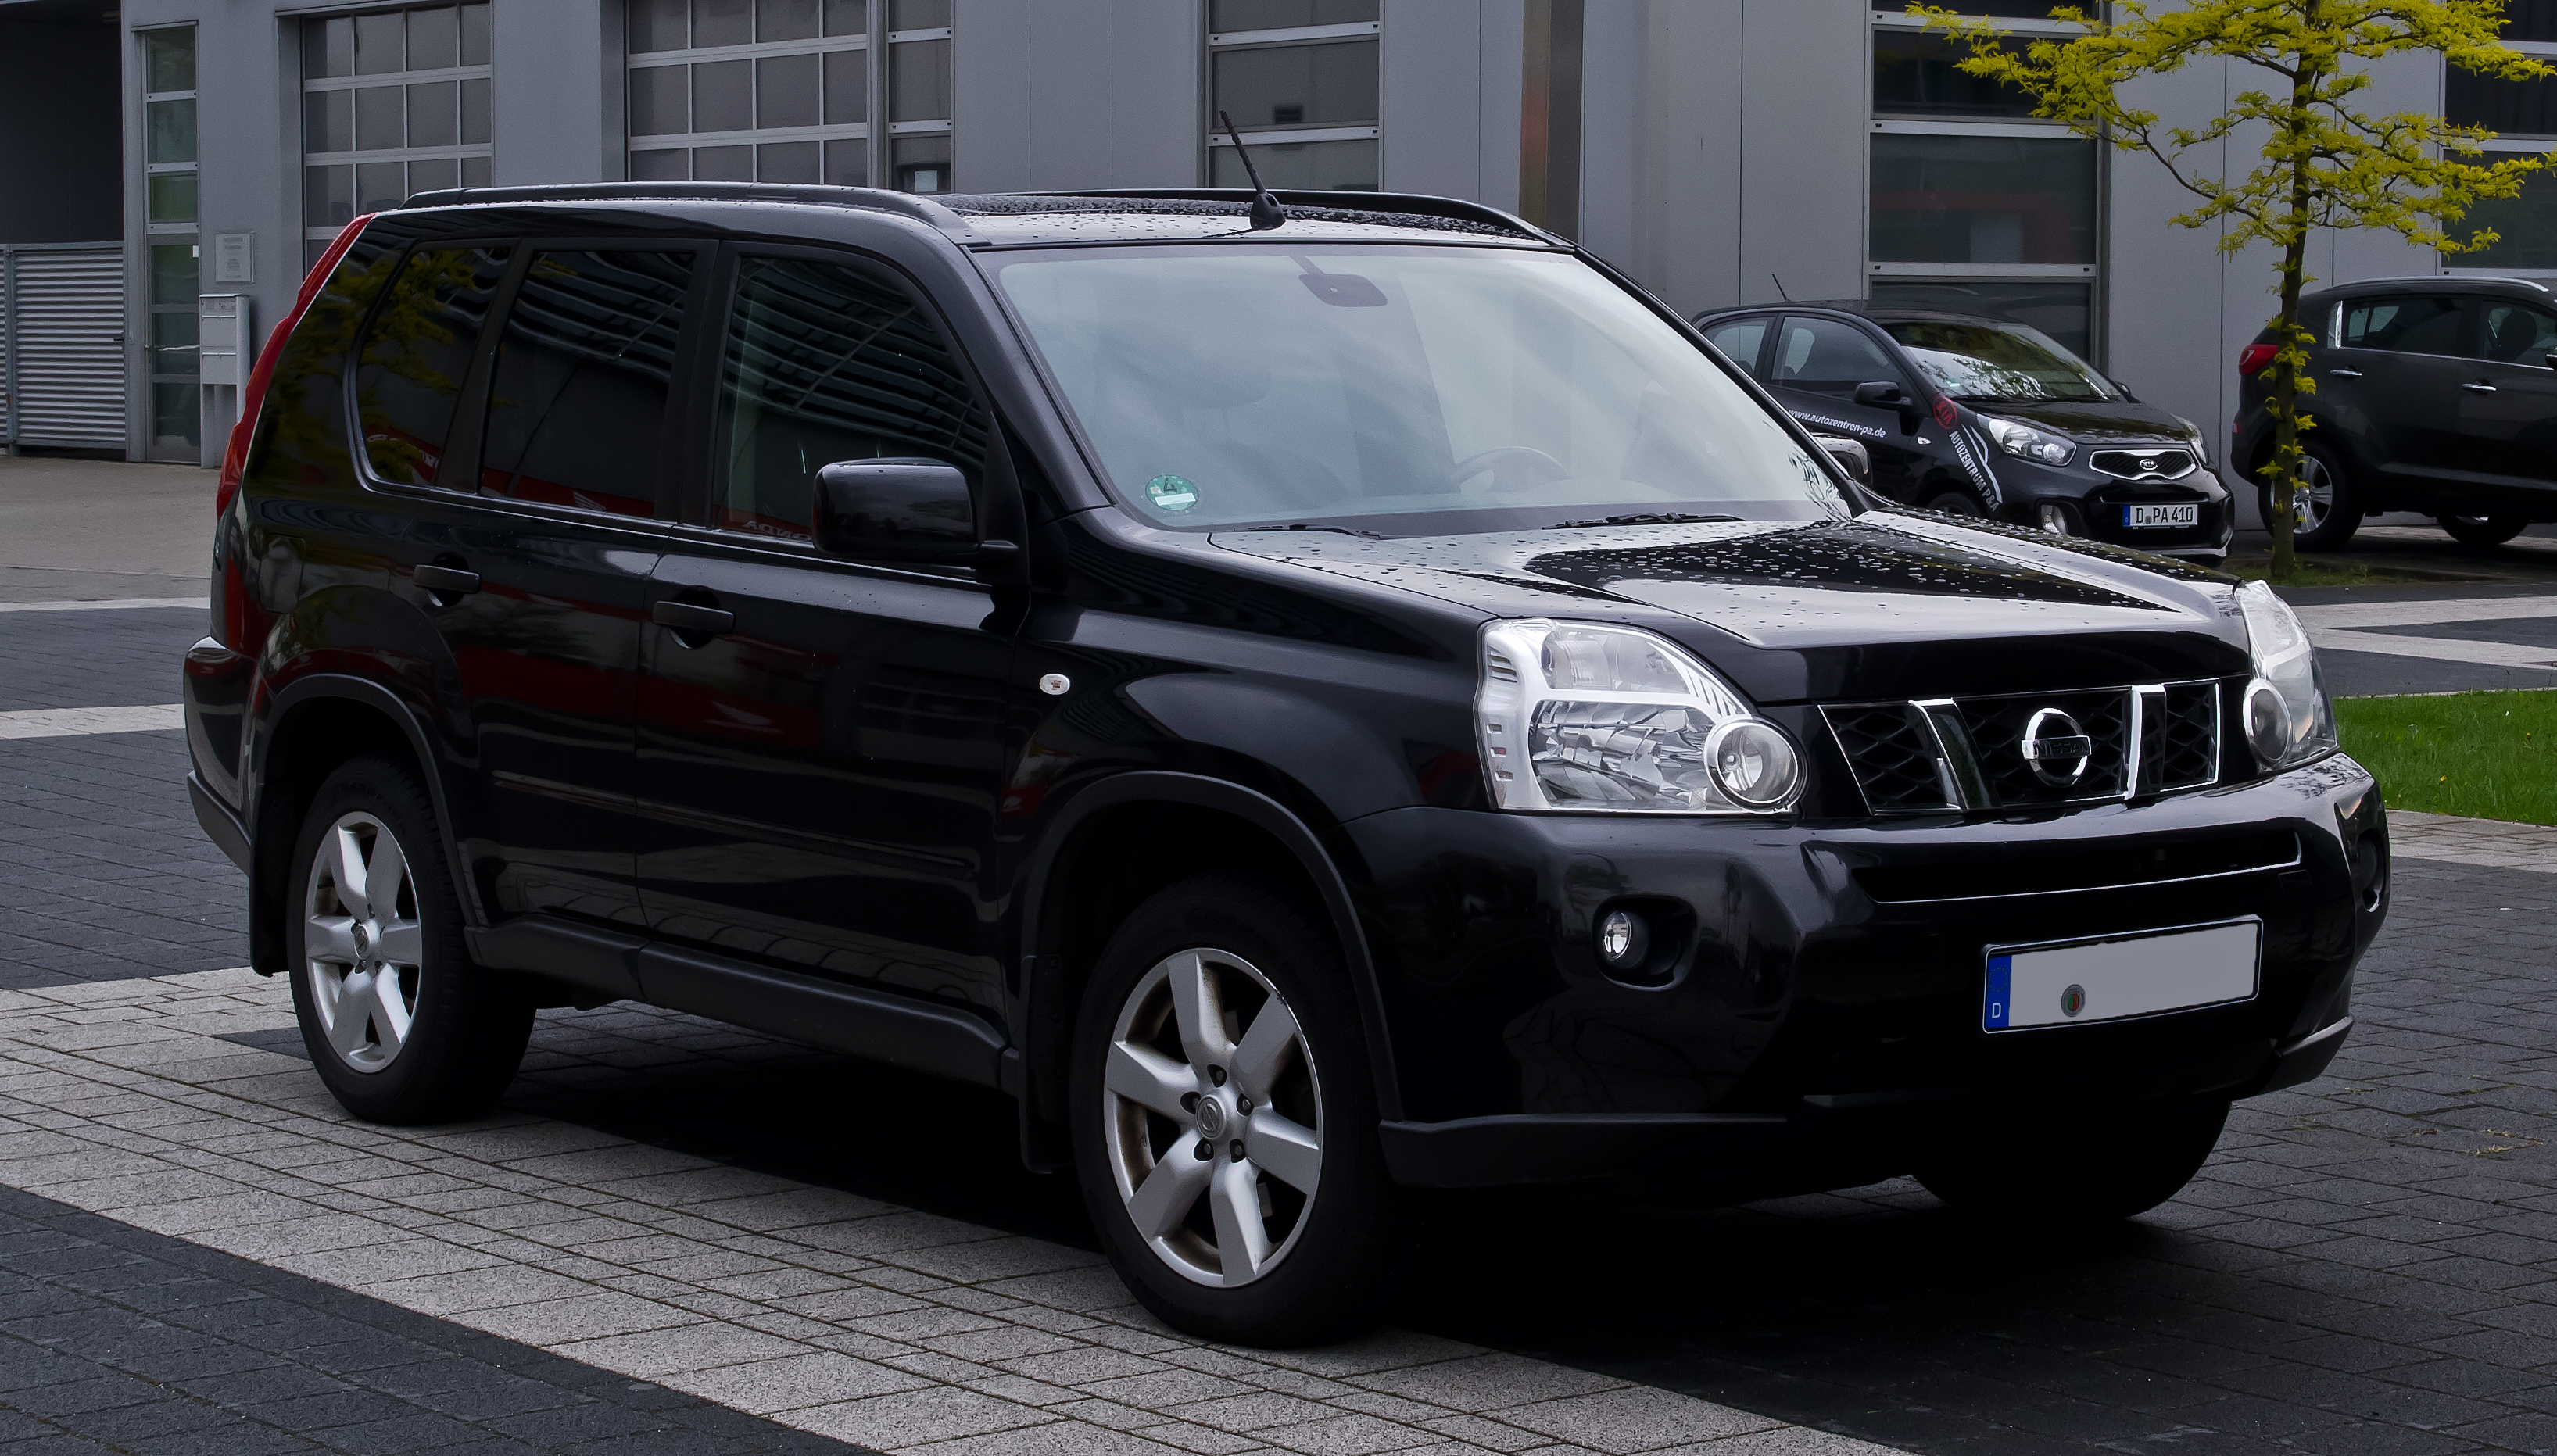 2008 nissan x trail 2 pictures information and specs. Black Bedroom Furniture Sets. Home Design Ideas